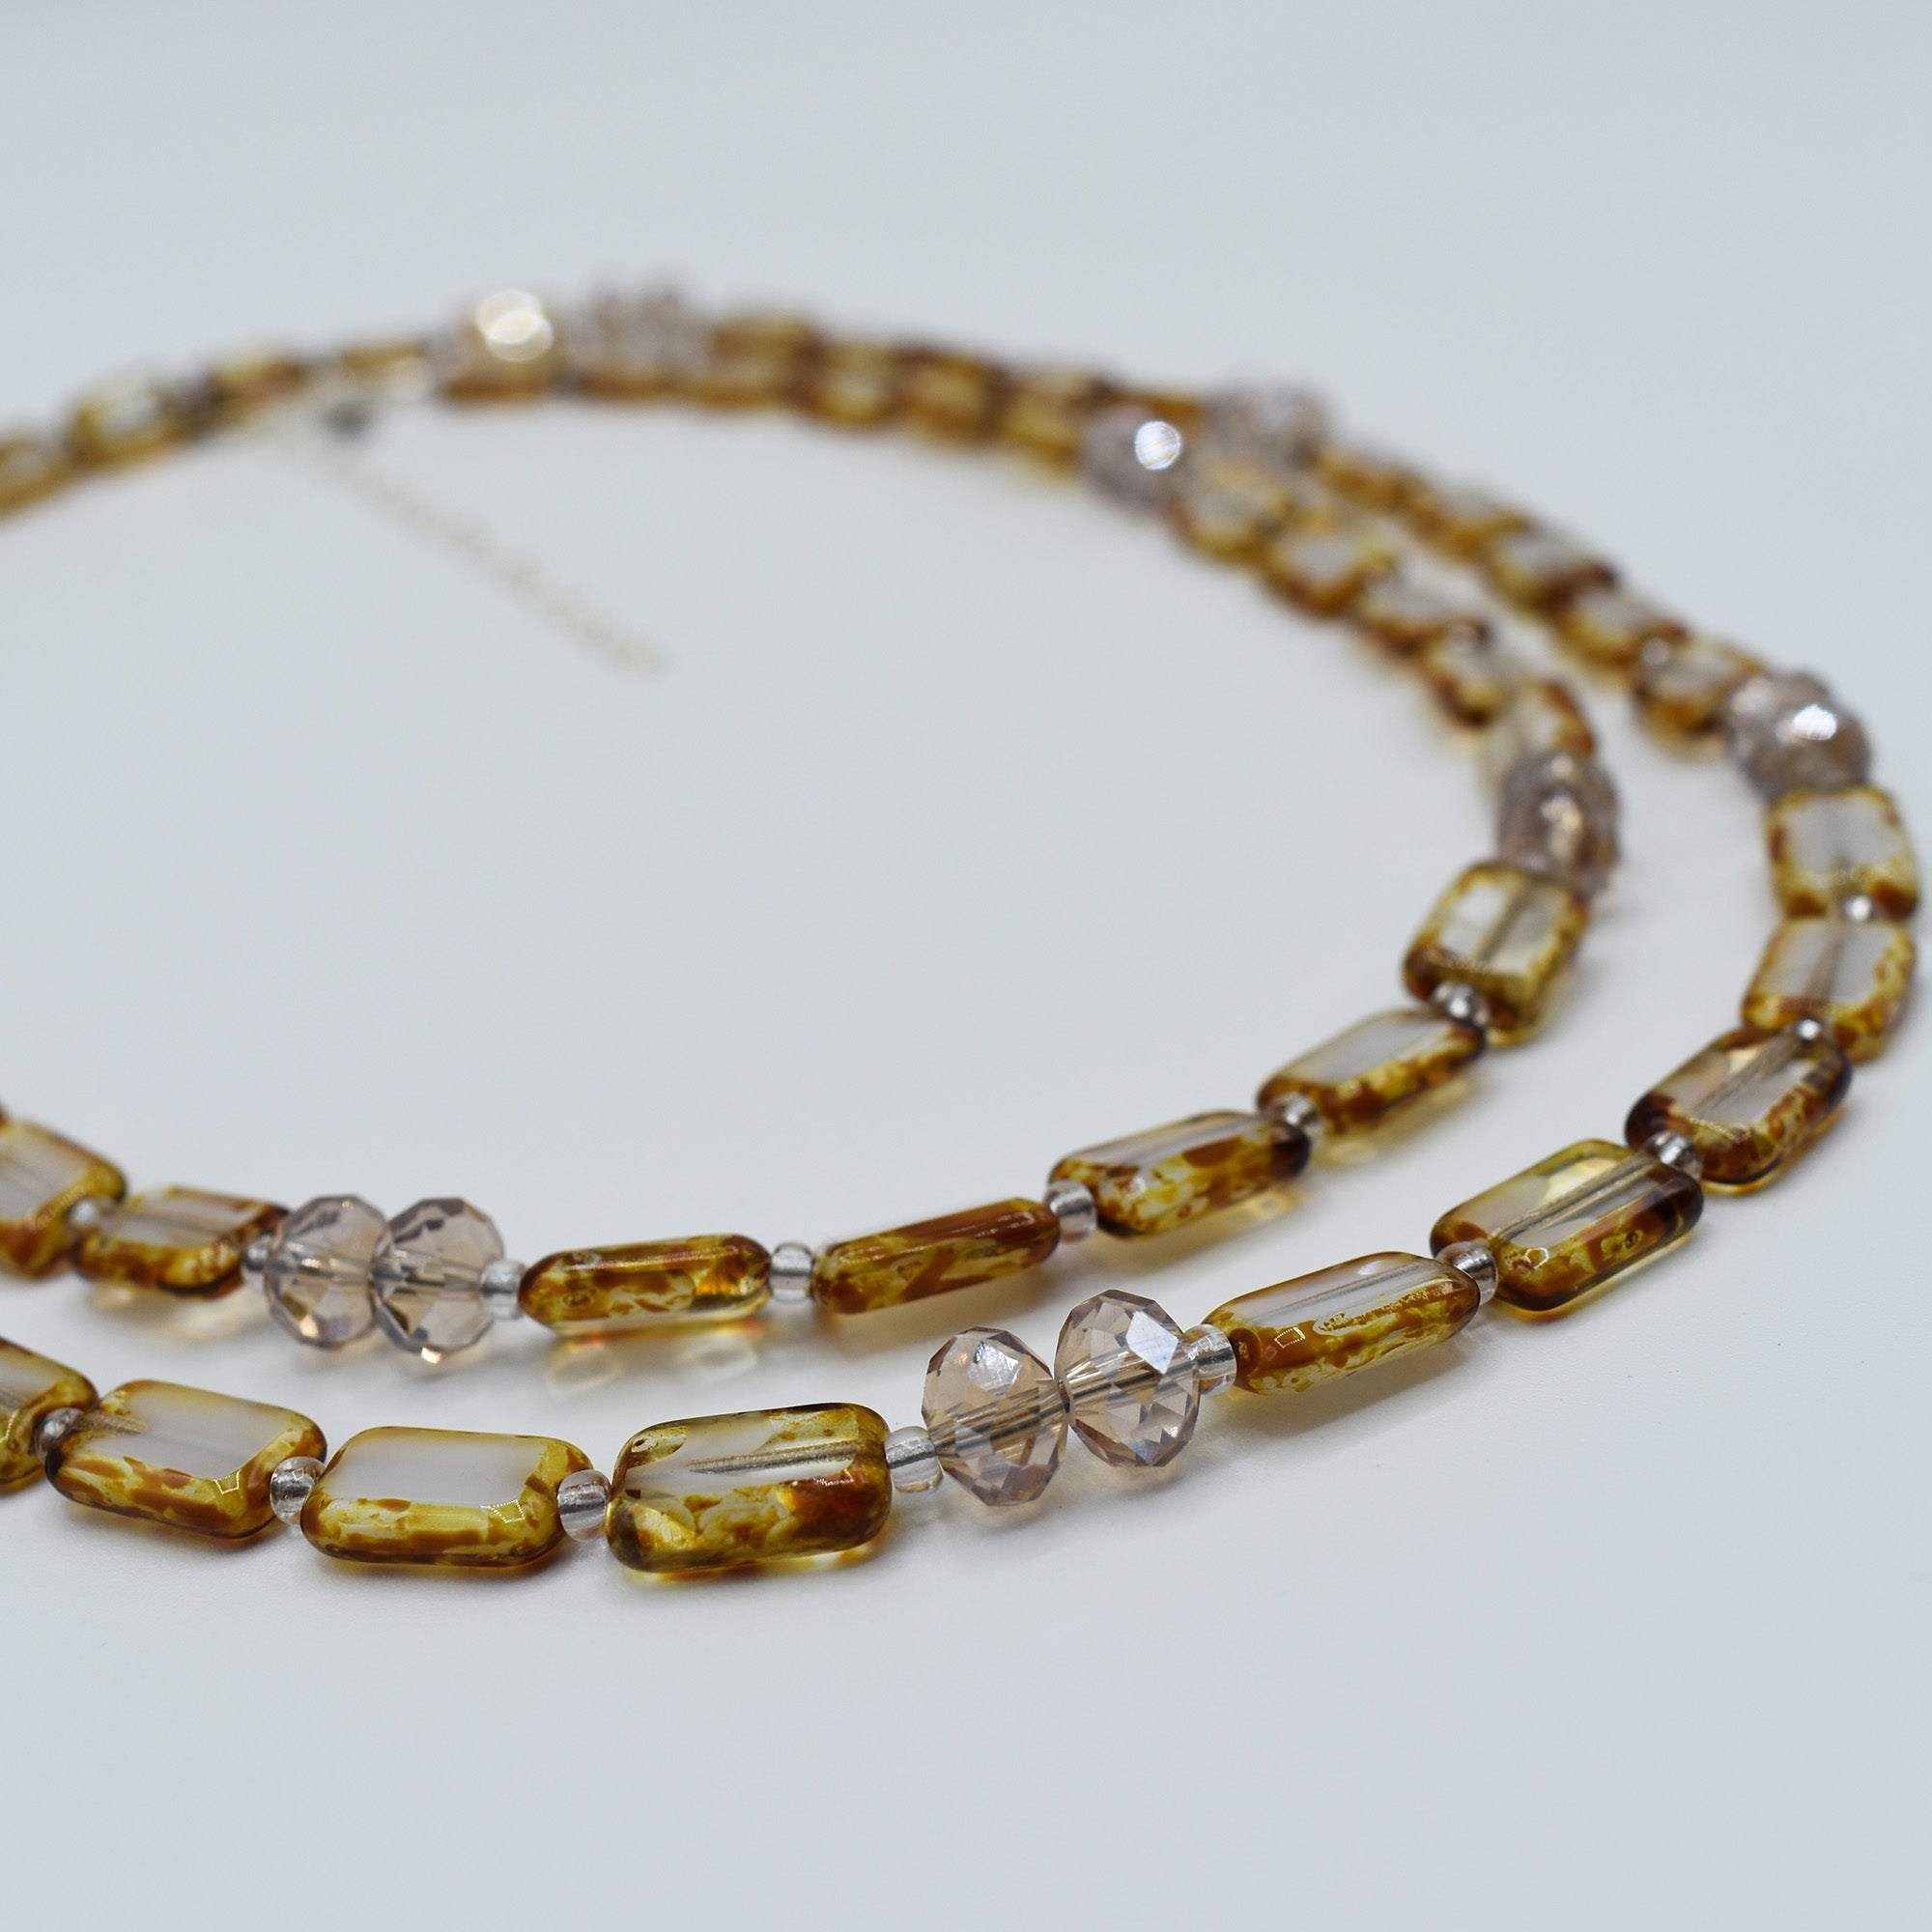 "Sparkle Crystal Wrap Necklace or Bracelet, 44"", White Swirl with Champagne"